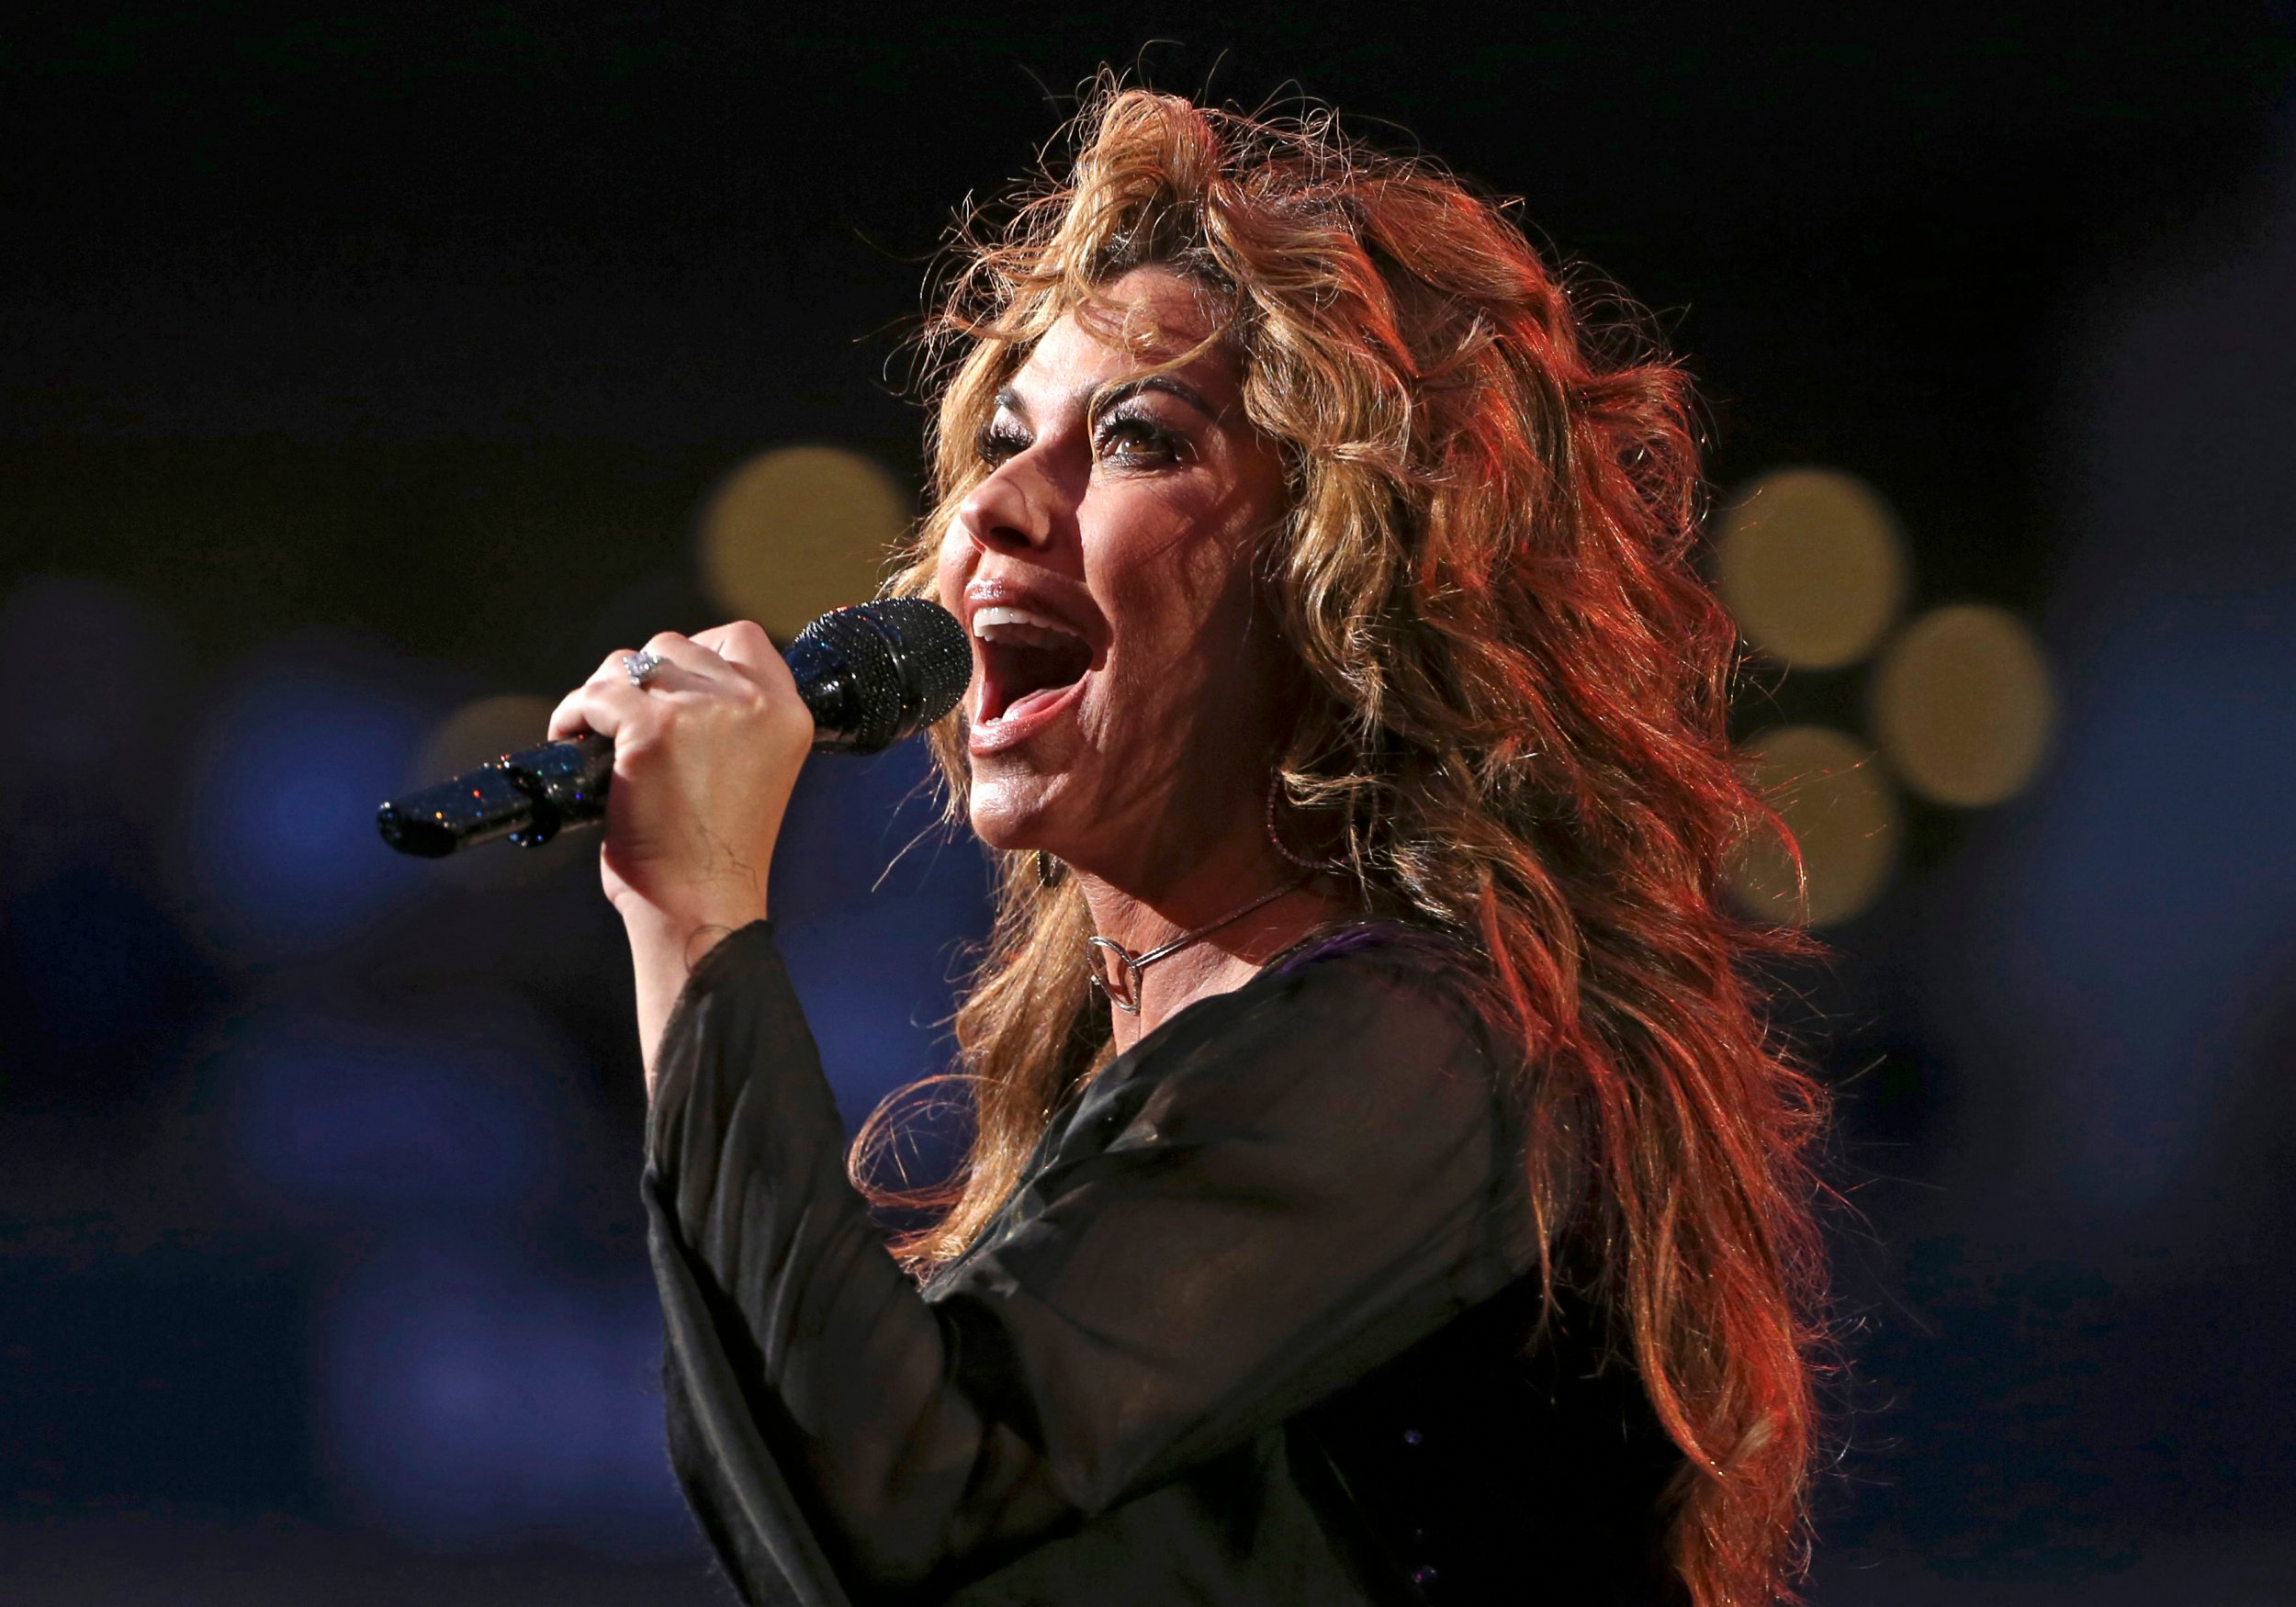 "FILE - In this Aug. 28, 2017, file photo, Shania Twain performs during opening ceremonies for the U.S. Open tennis tournament in New York. Twain has apologized for saying if she were American she would have voted for Donald Trump for president, even though he's offensive. She made the comments in an interview with The Guardian that was published over the weekend. She told the British newspaper ""Do you want straight or polite? ??? I would have voted for a feeling that is transparent."" (AP Photo/Kathy Willens, File)"